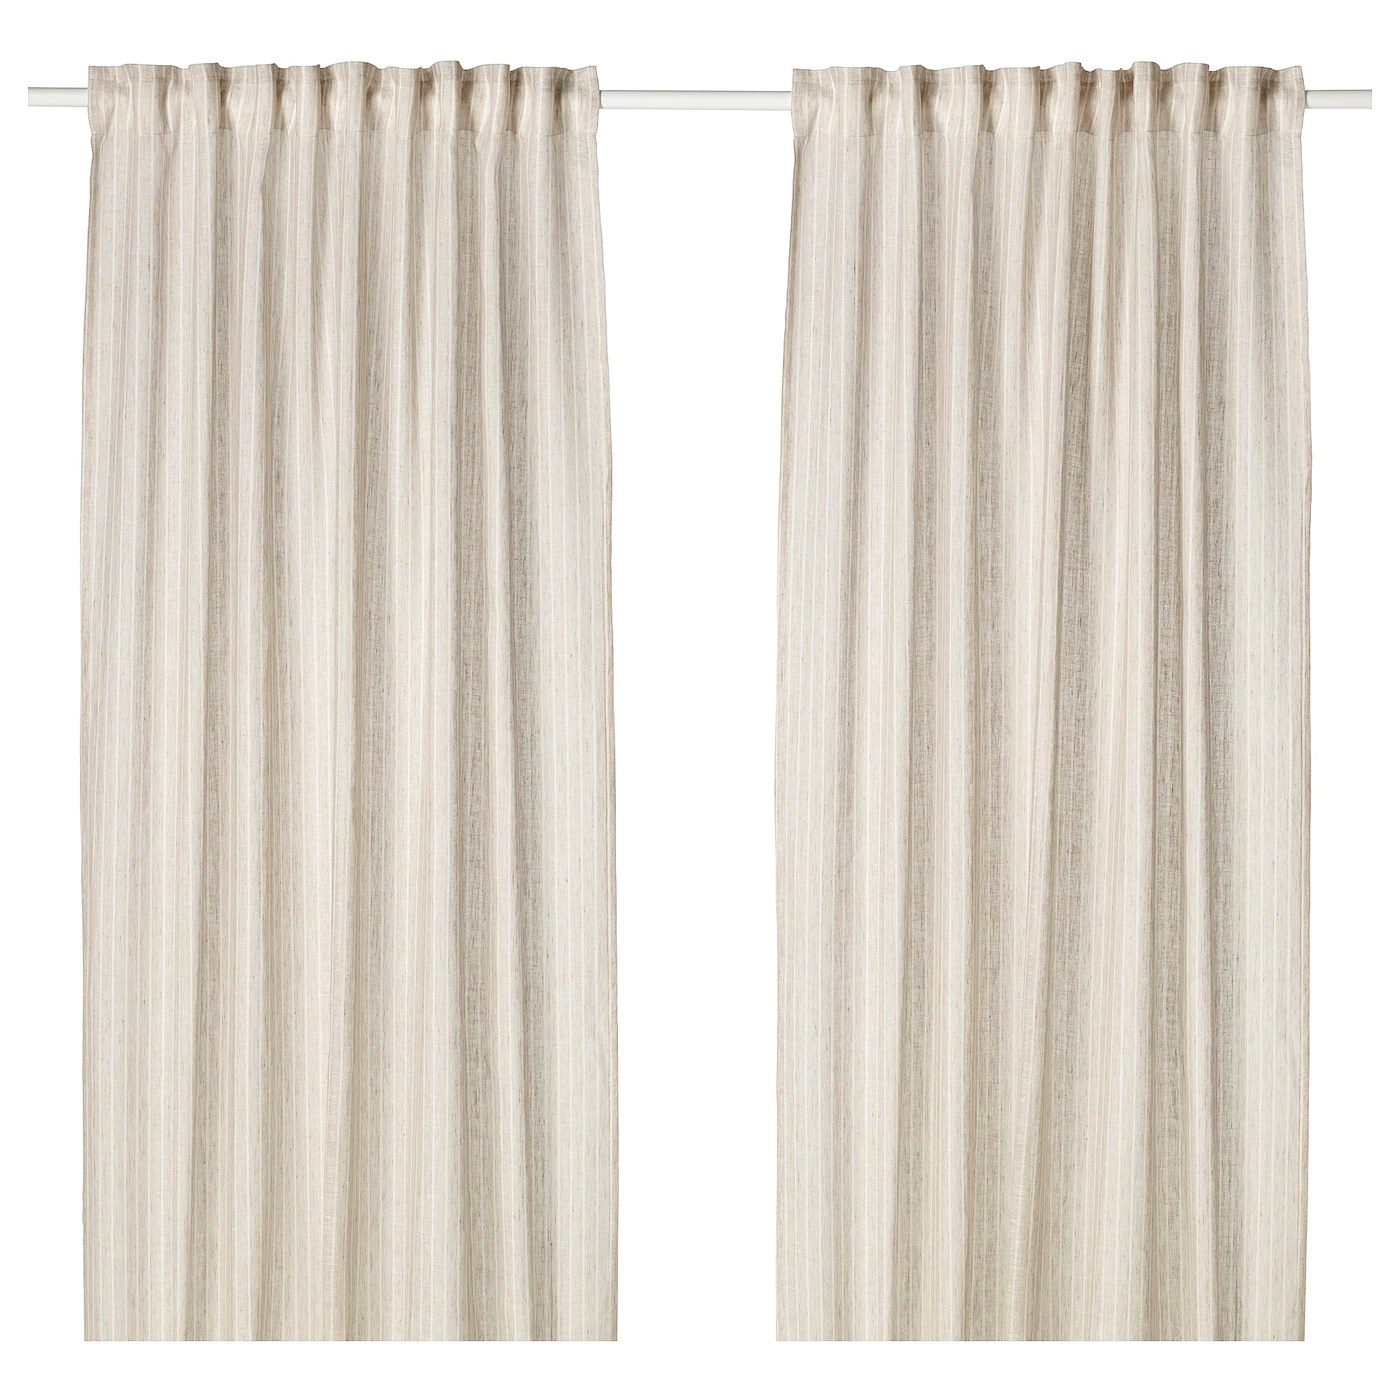 Curtain Ikea Curtains Ready Made Curtains Ikea